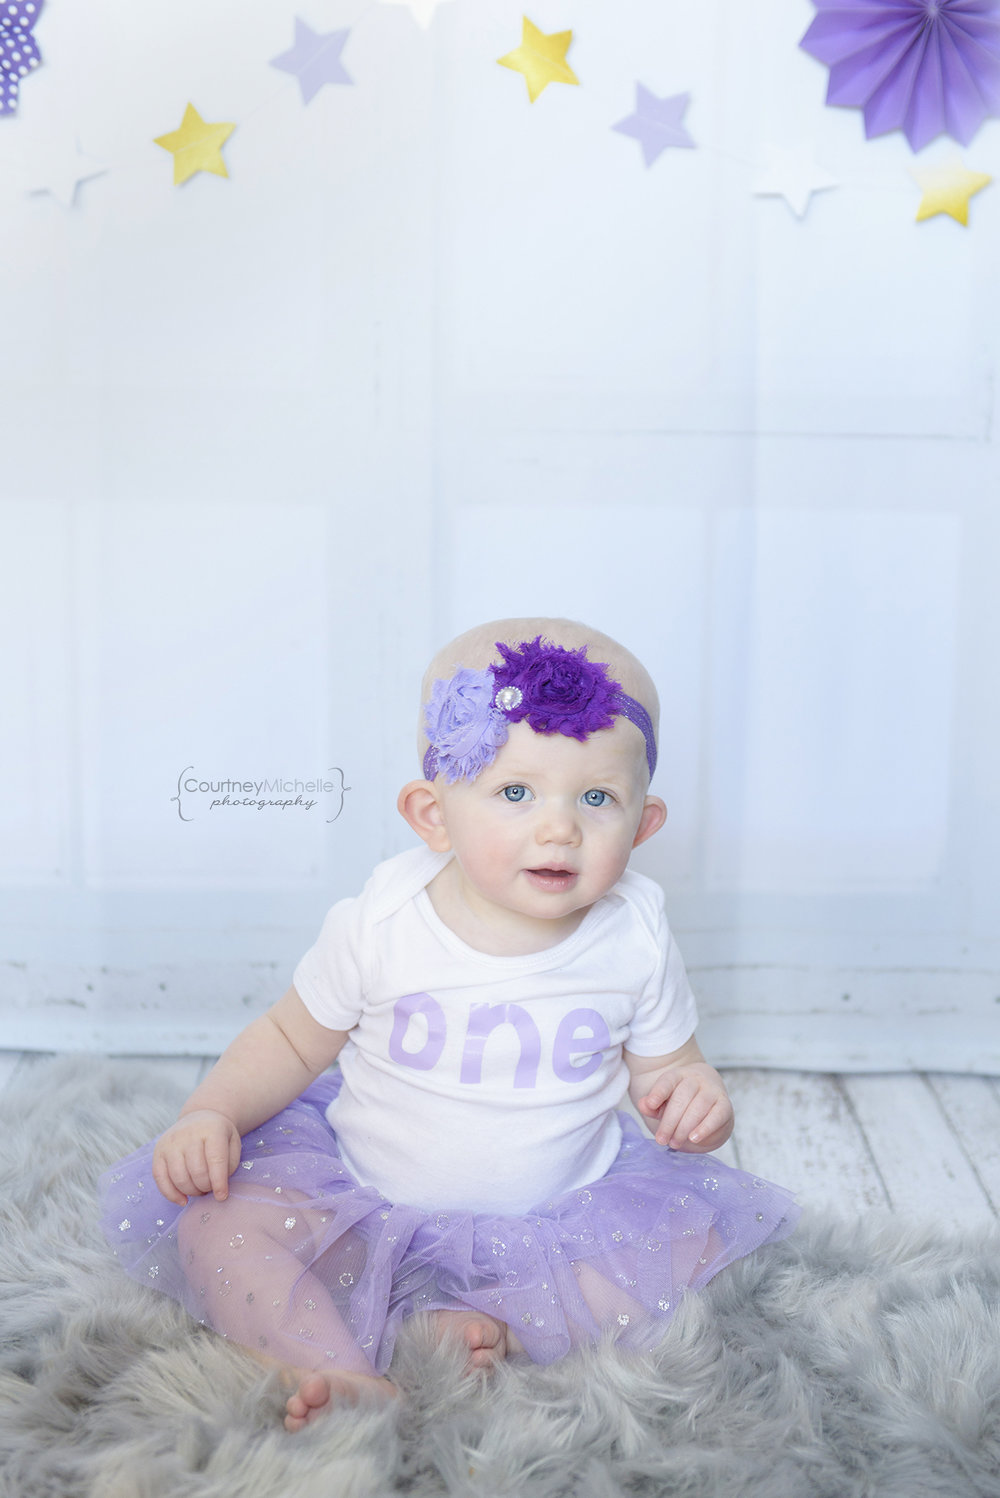 ©CourtneyMichellePhotography_spring_one_year_old_birthday_purple_tulips_2020.jpg